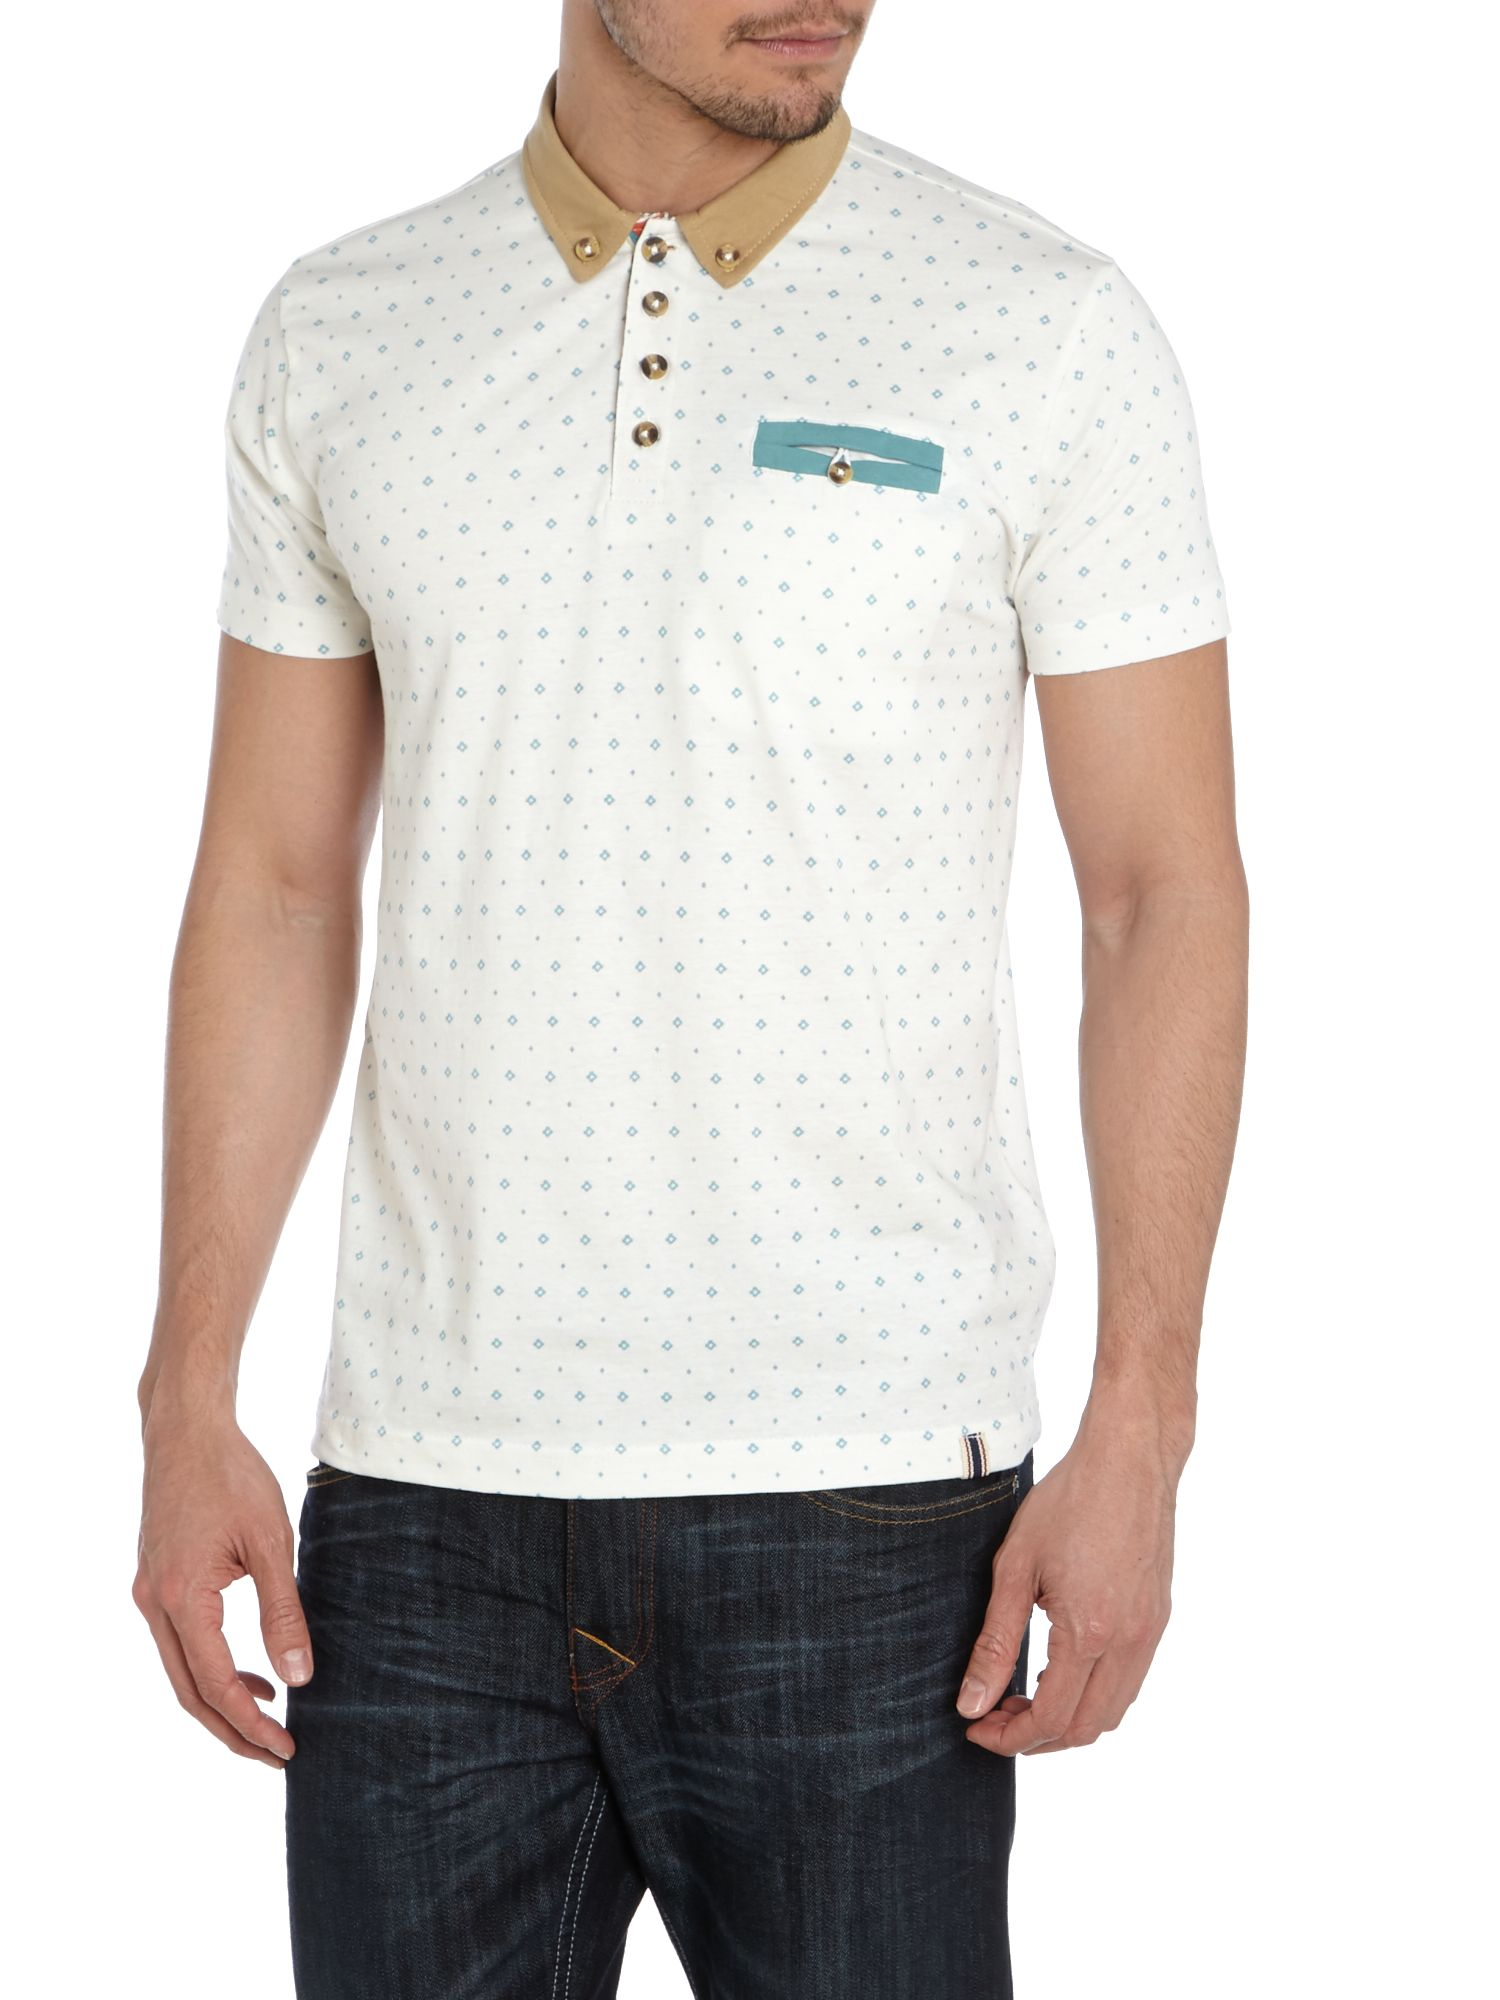 Diamond print polo with contrast collar